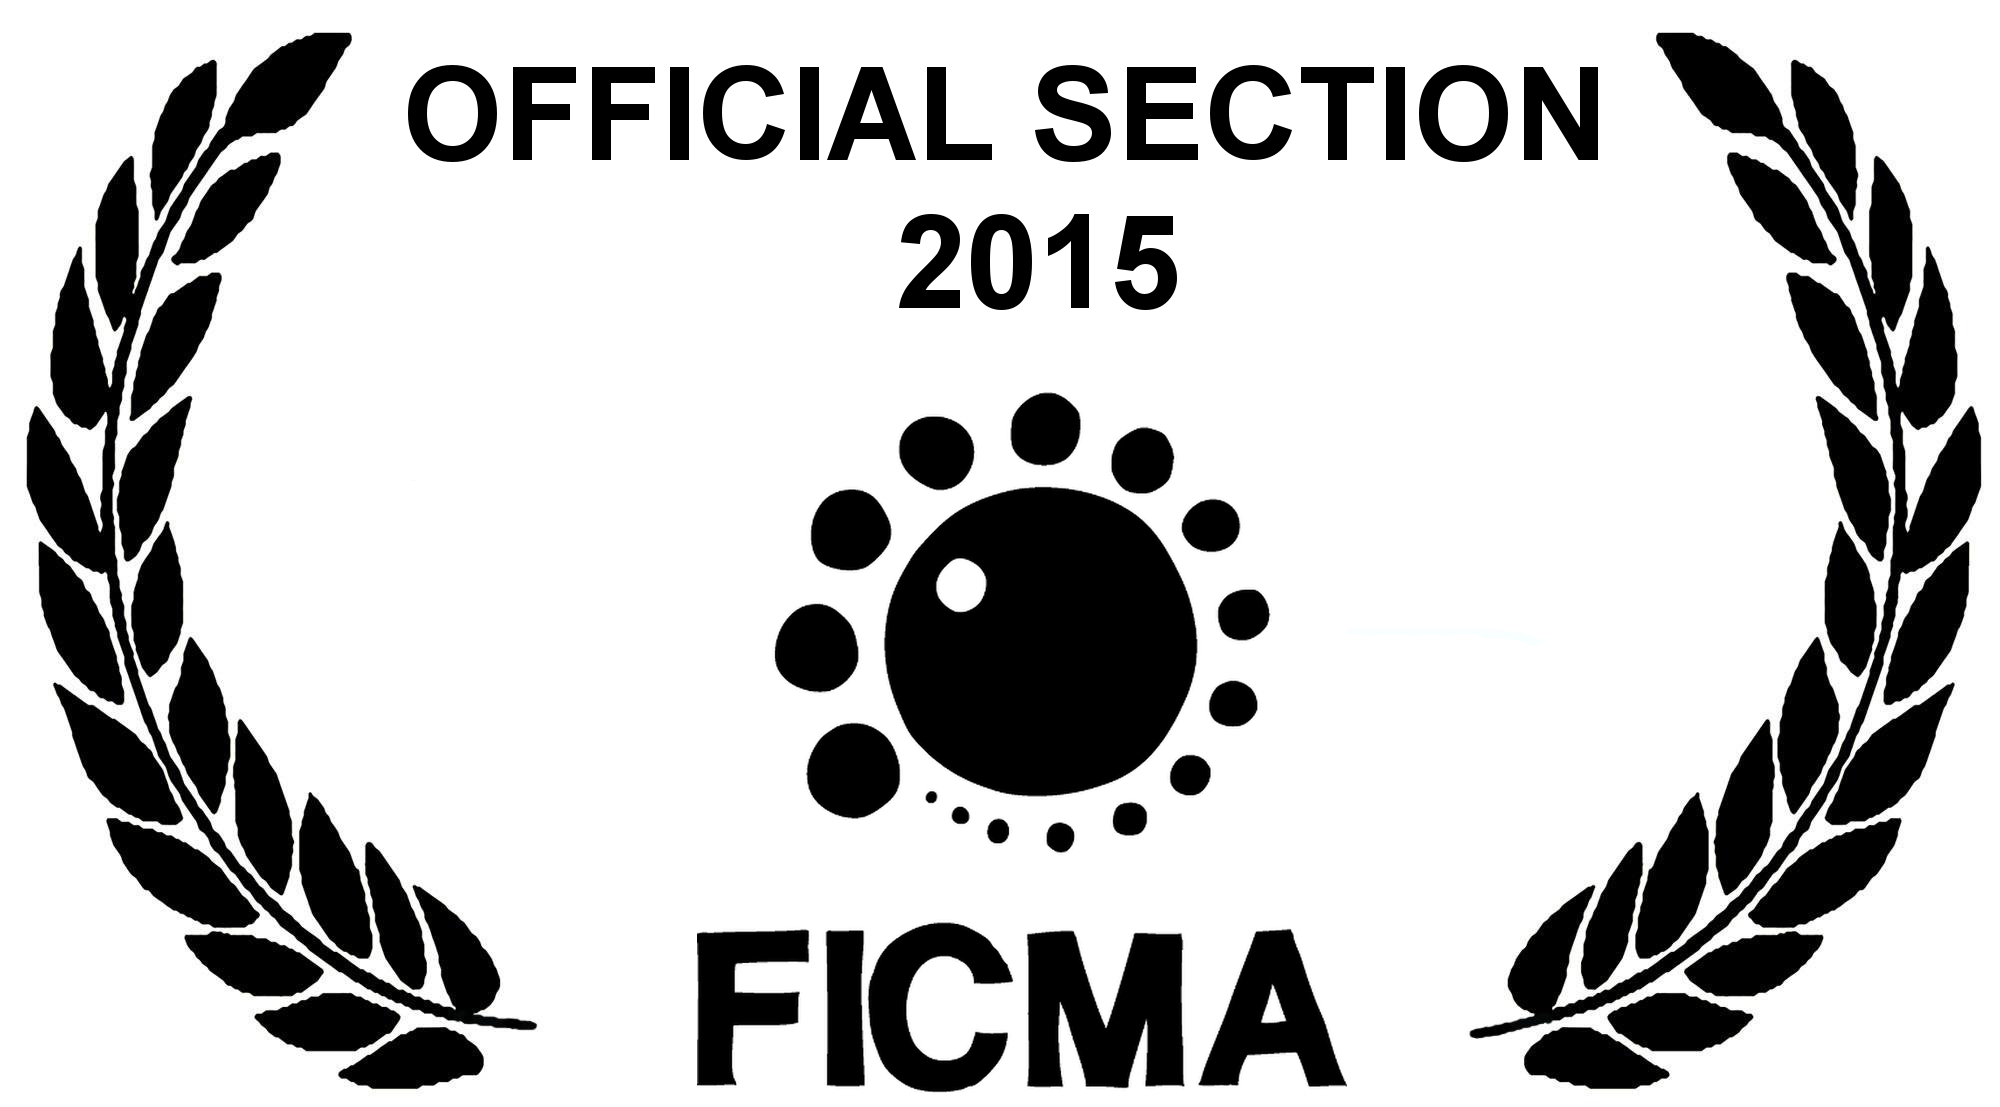 FICMA_OffcialSection2015